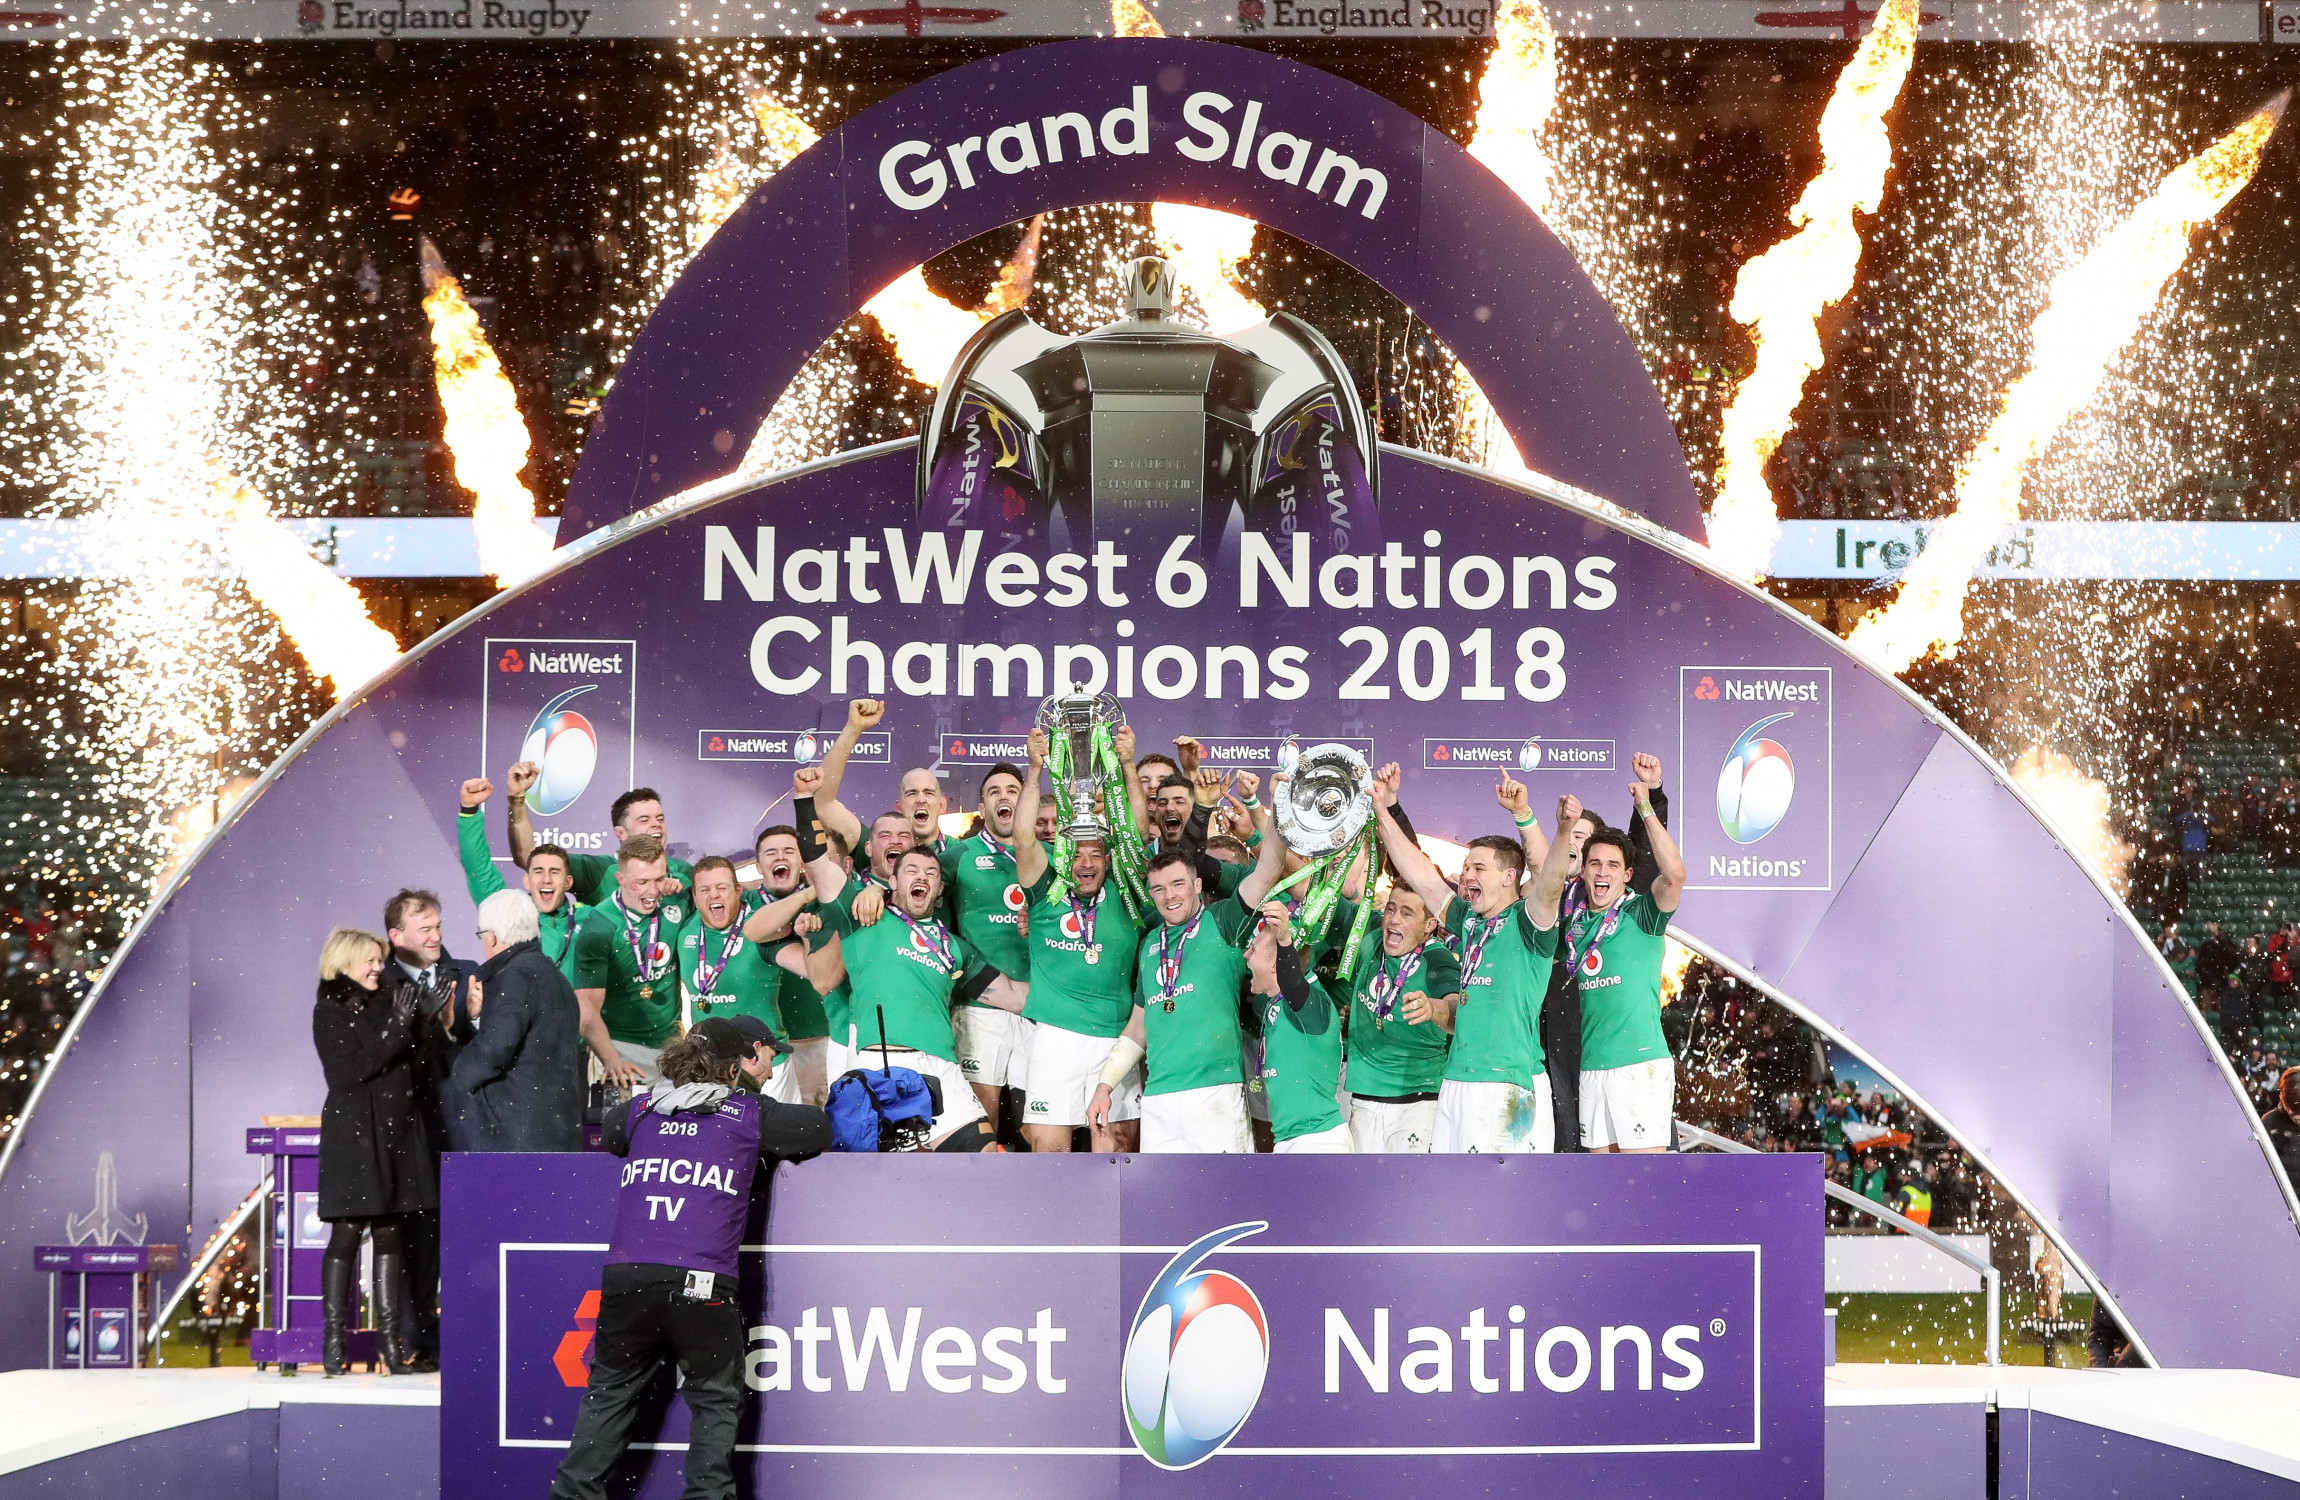 Six Nations 2018: Schmidt hails Irish 'class and courage' after Grand Slam